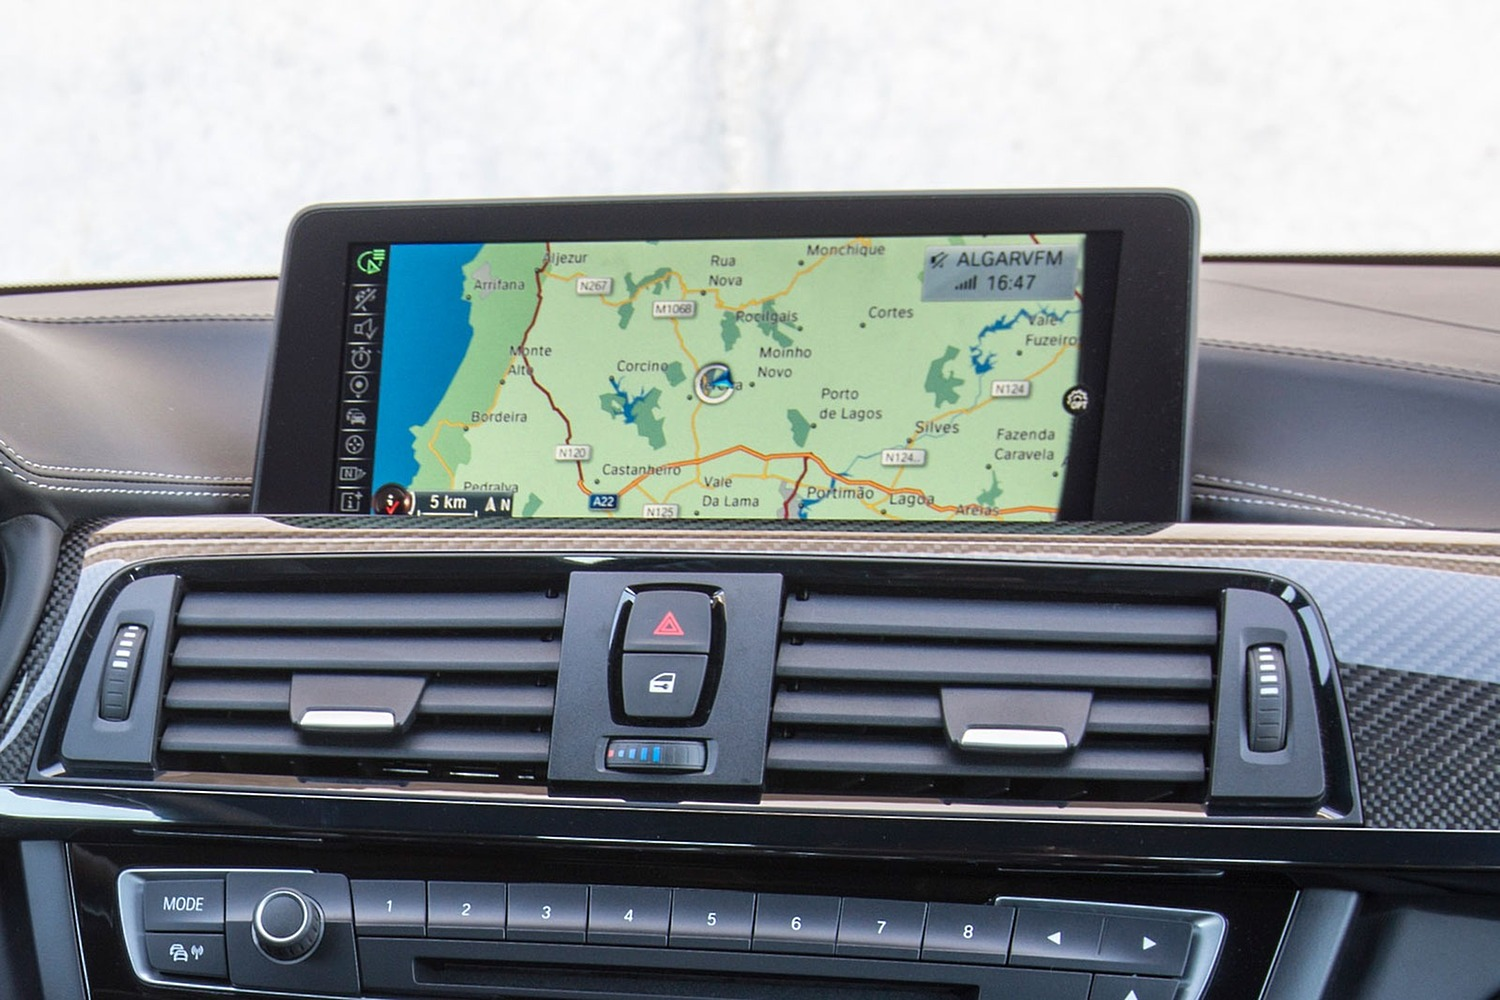 BMW M4 Coupe Navigation System (2015 model year shown)